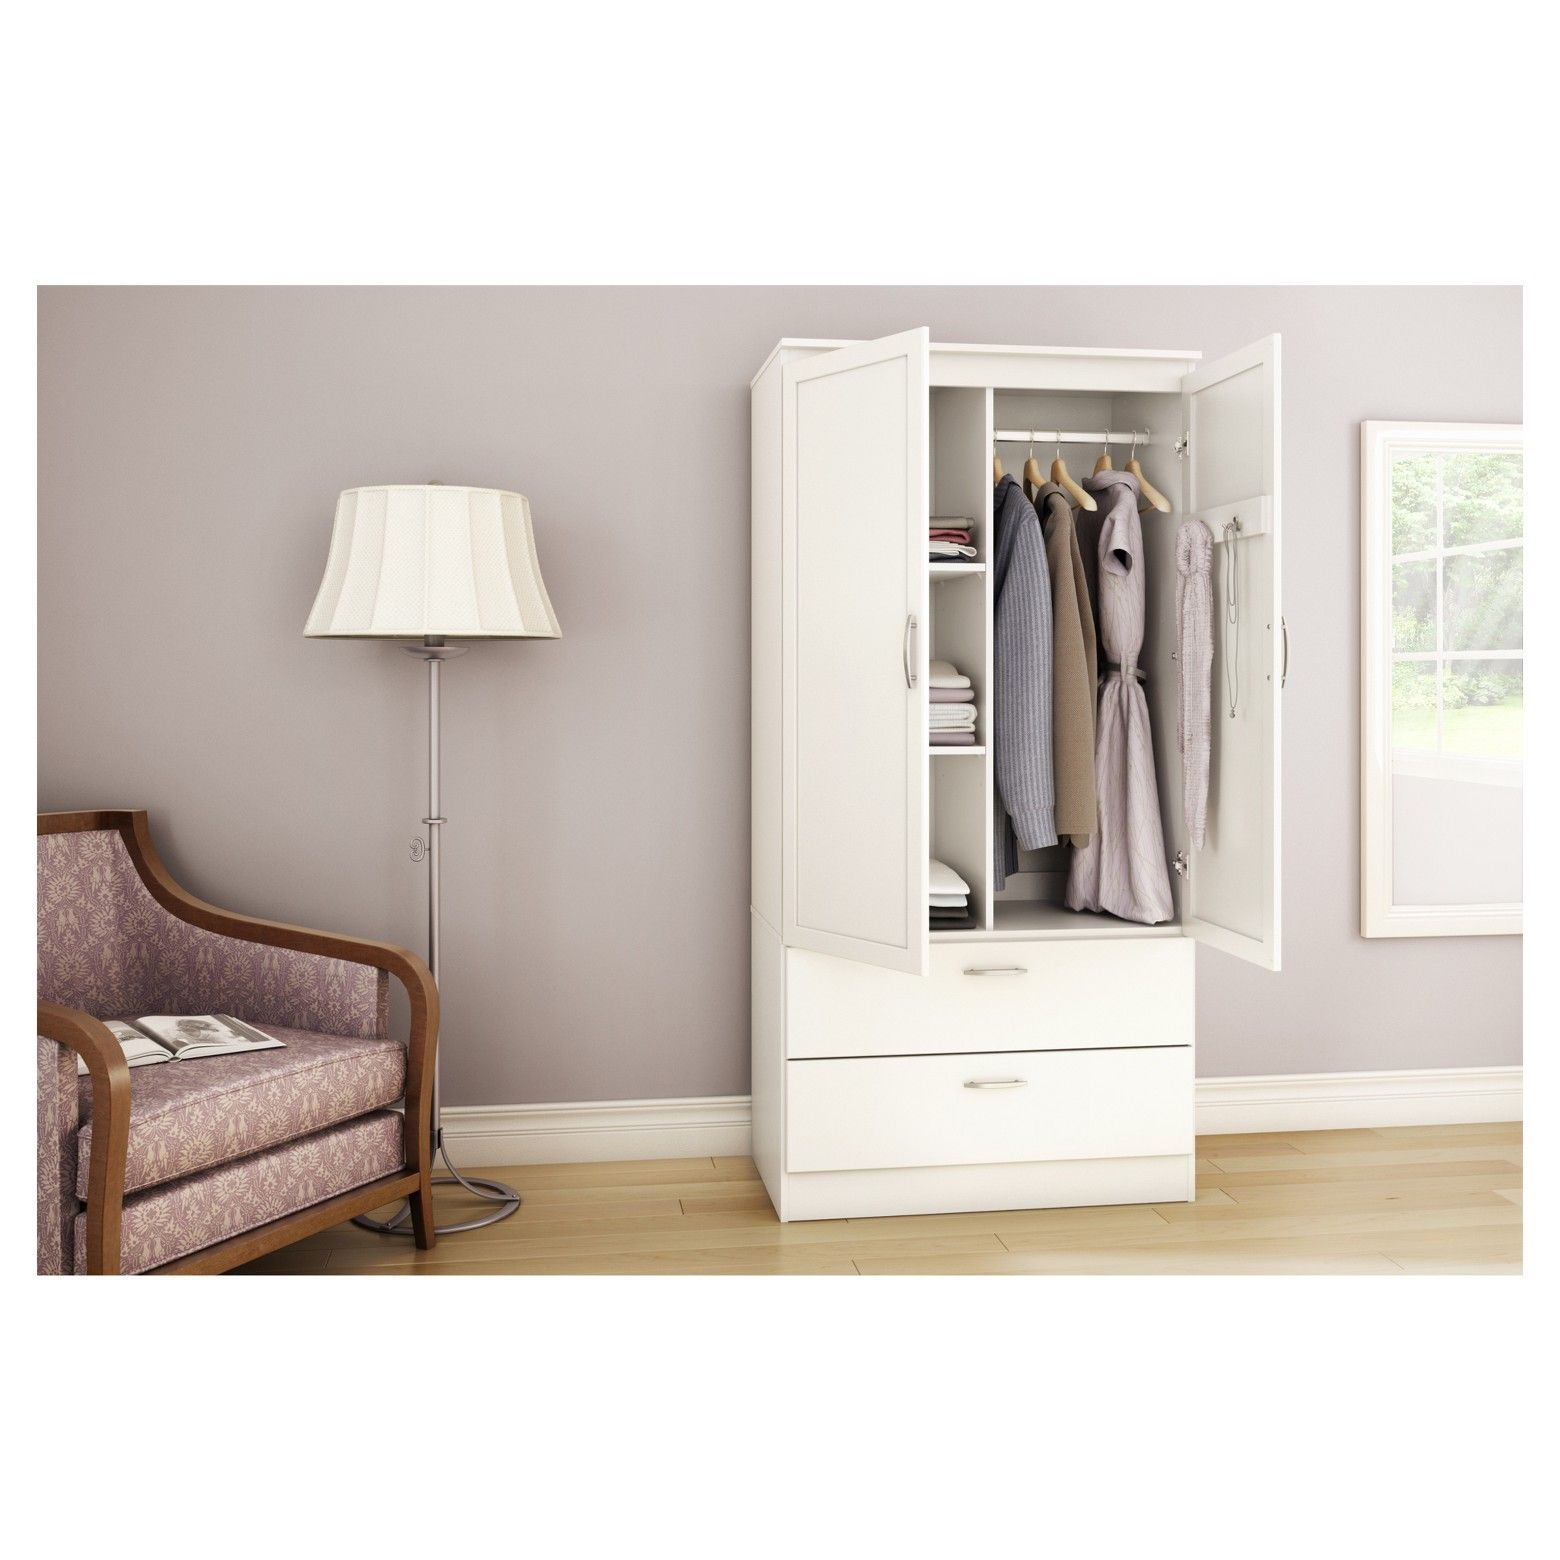 Awesome south Shore Acapella Wardrobe Armoire